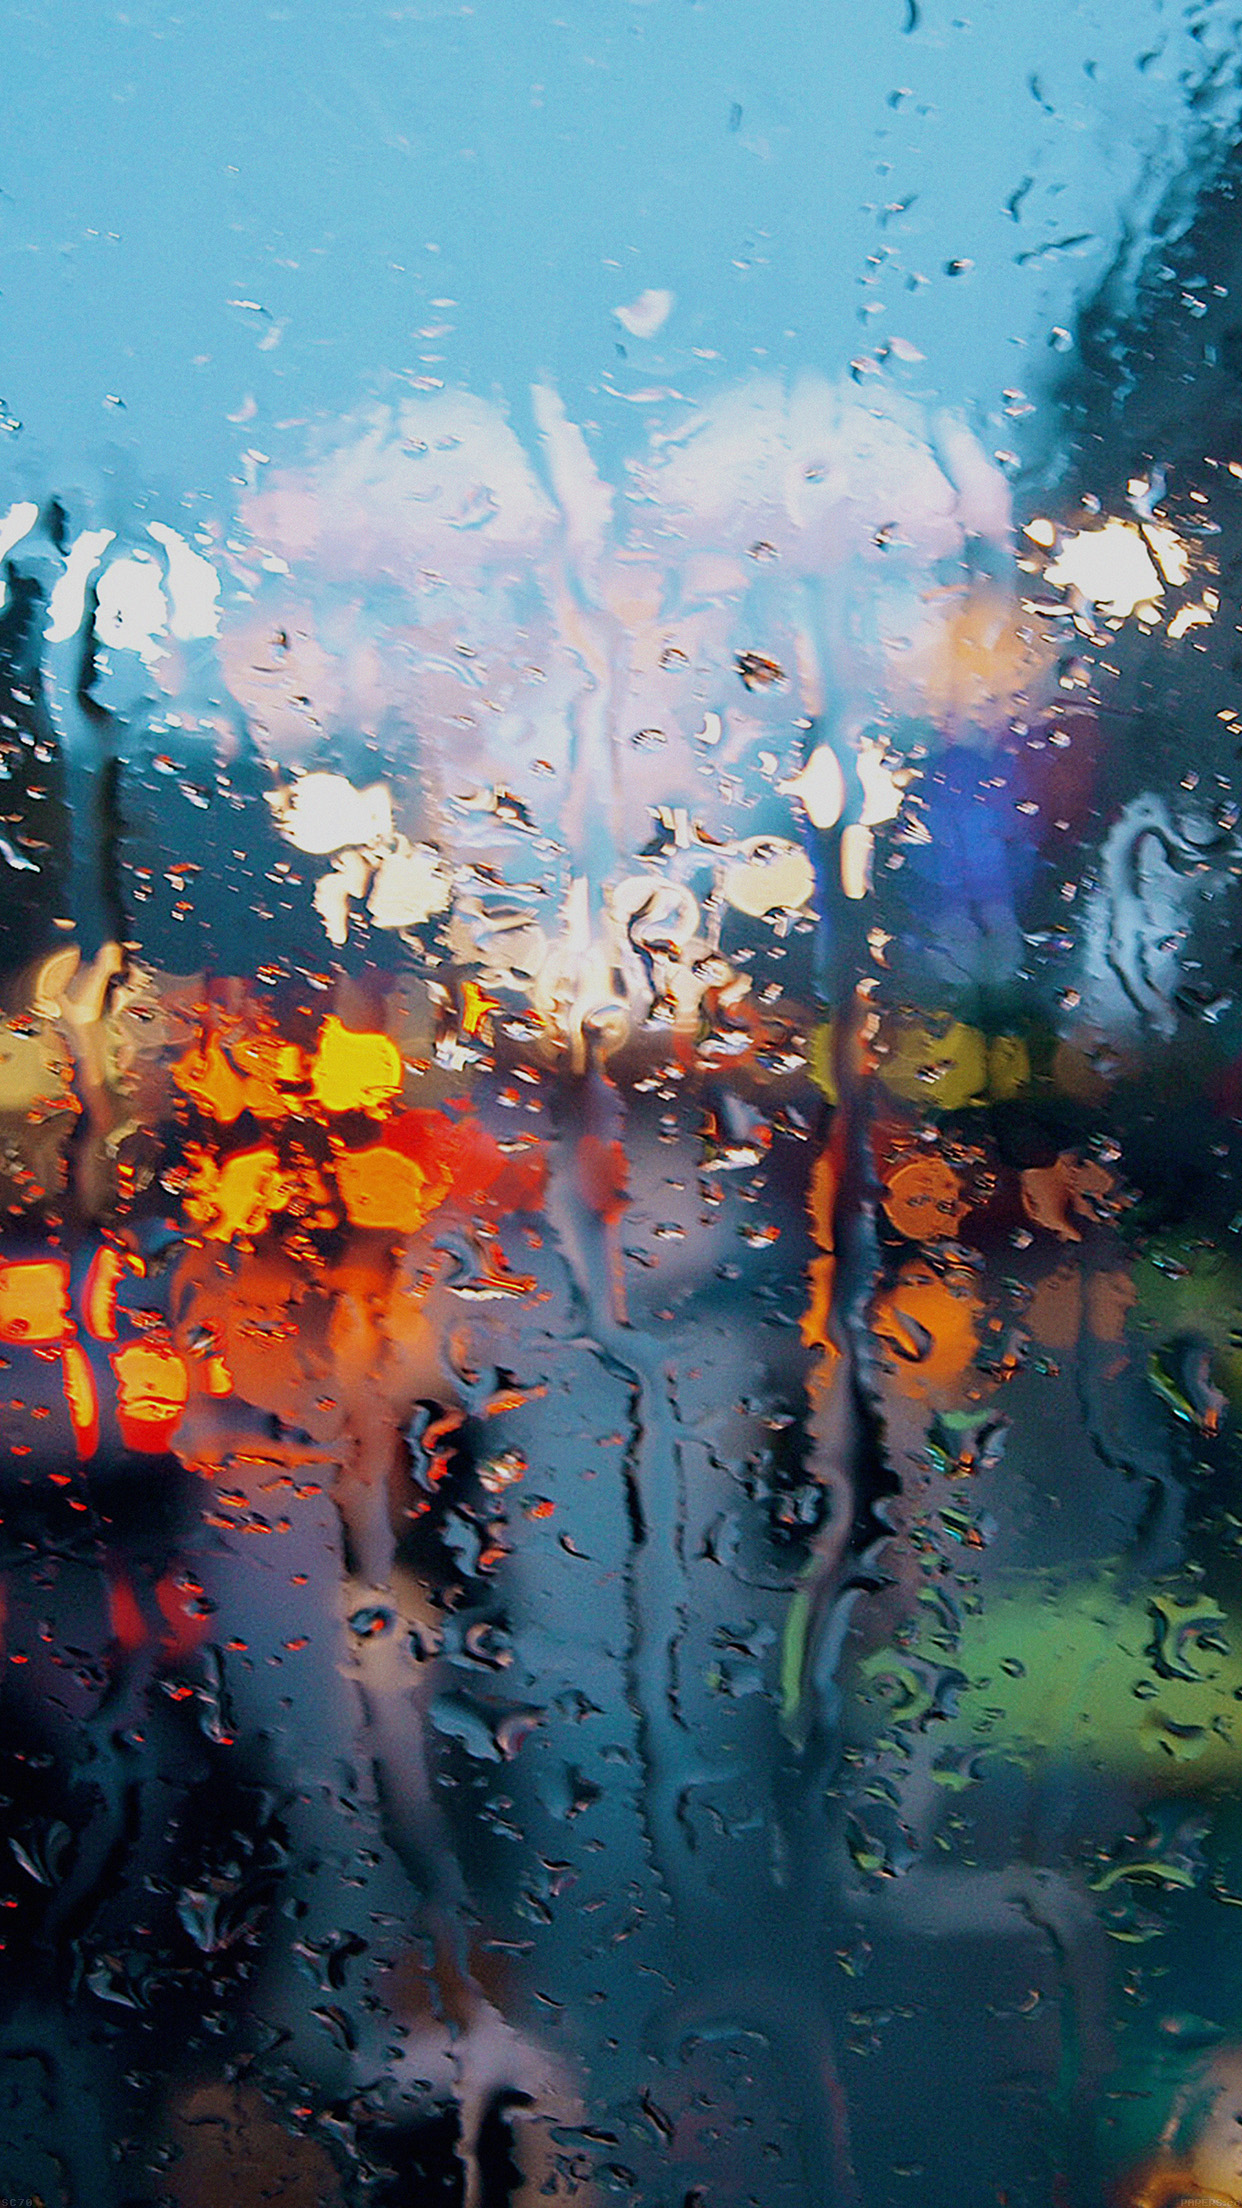 Bokeh wallpapers for iphone and ipad - Rainy window wallpaper ...